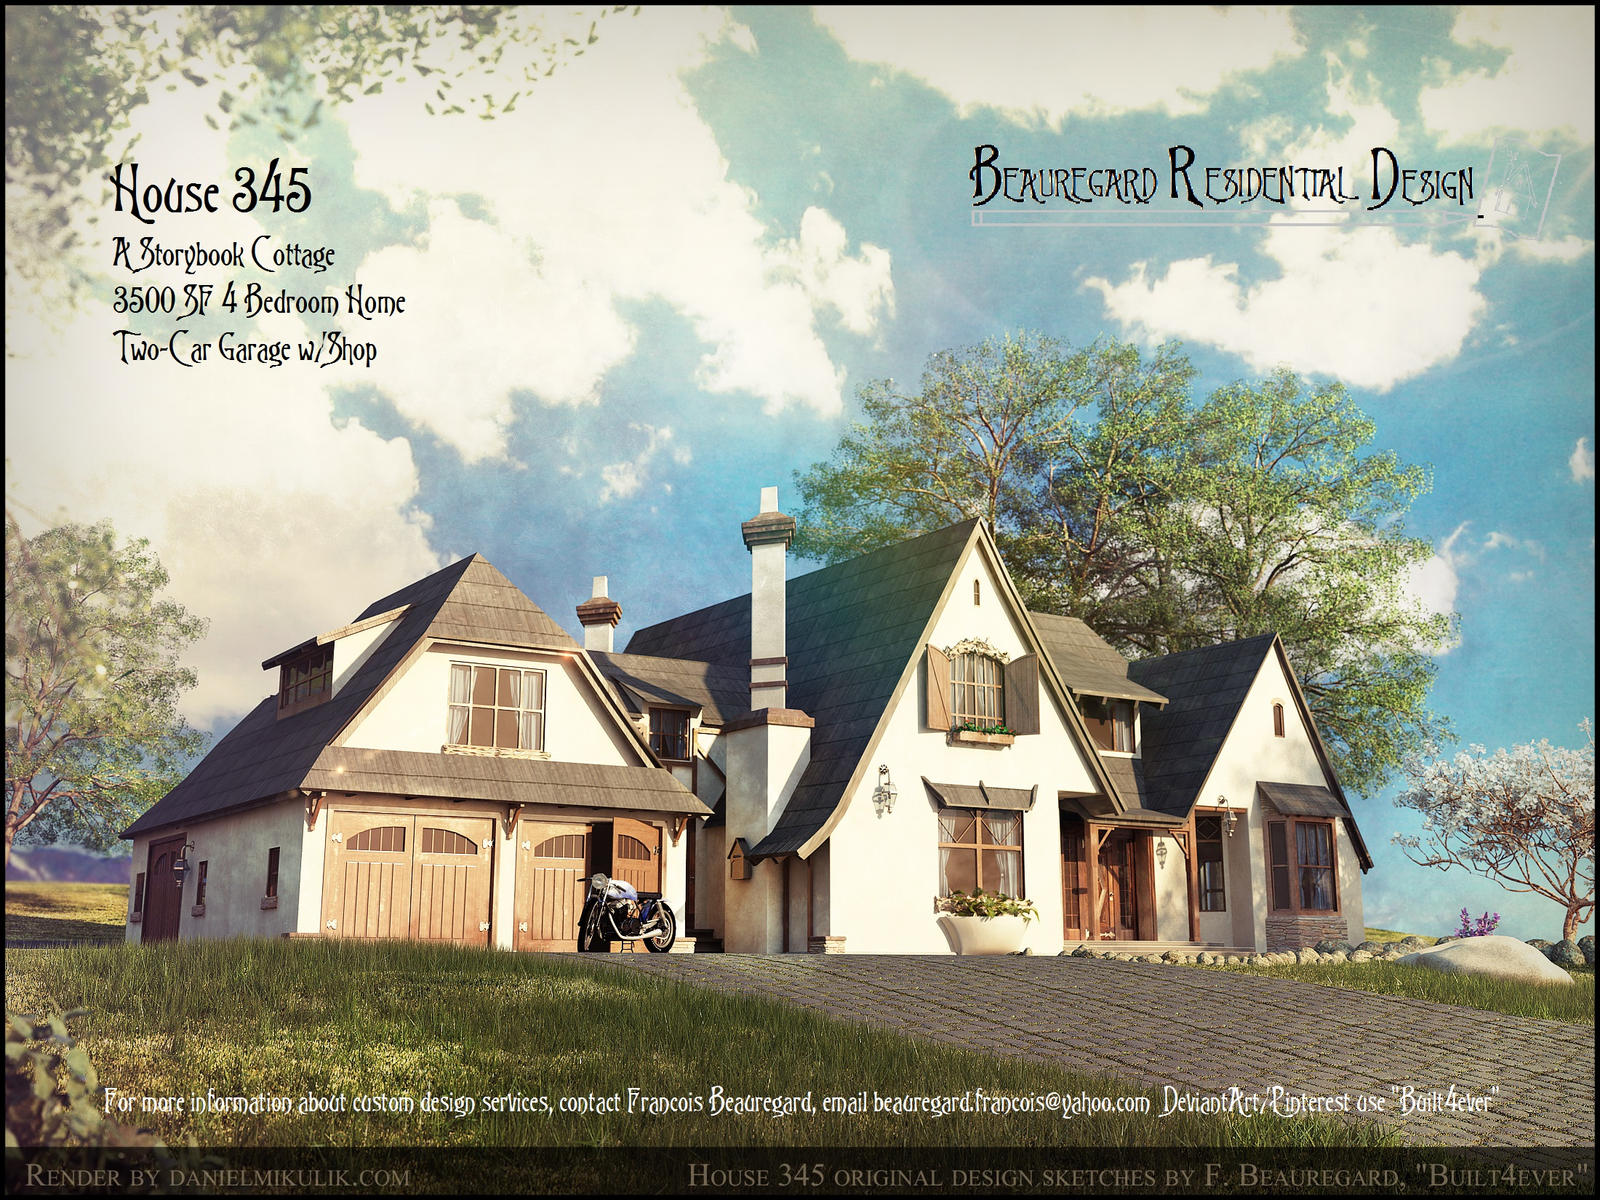 Color Portrait of House #345 by Built4ever